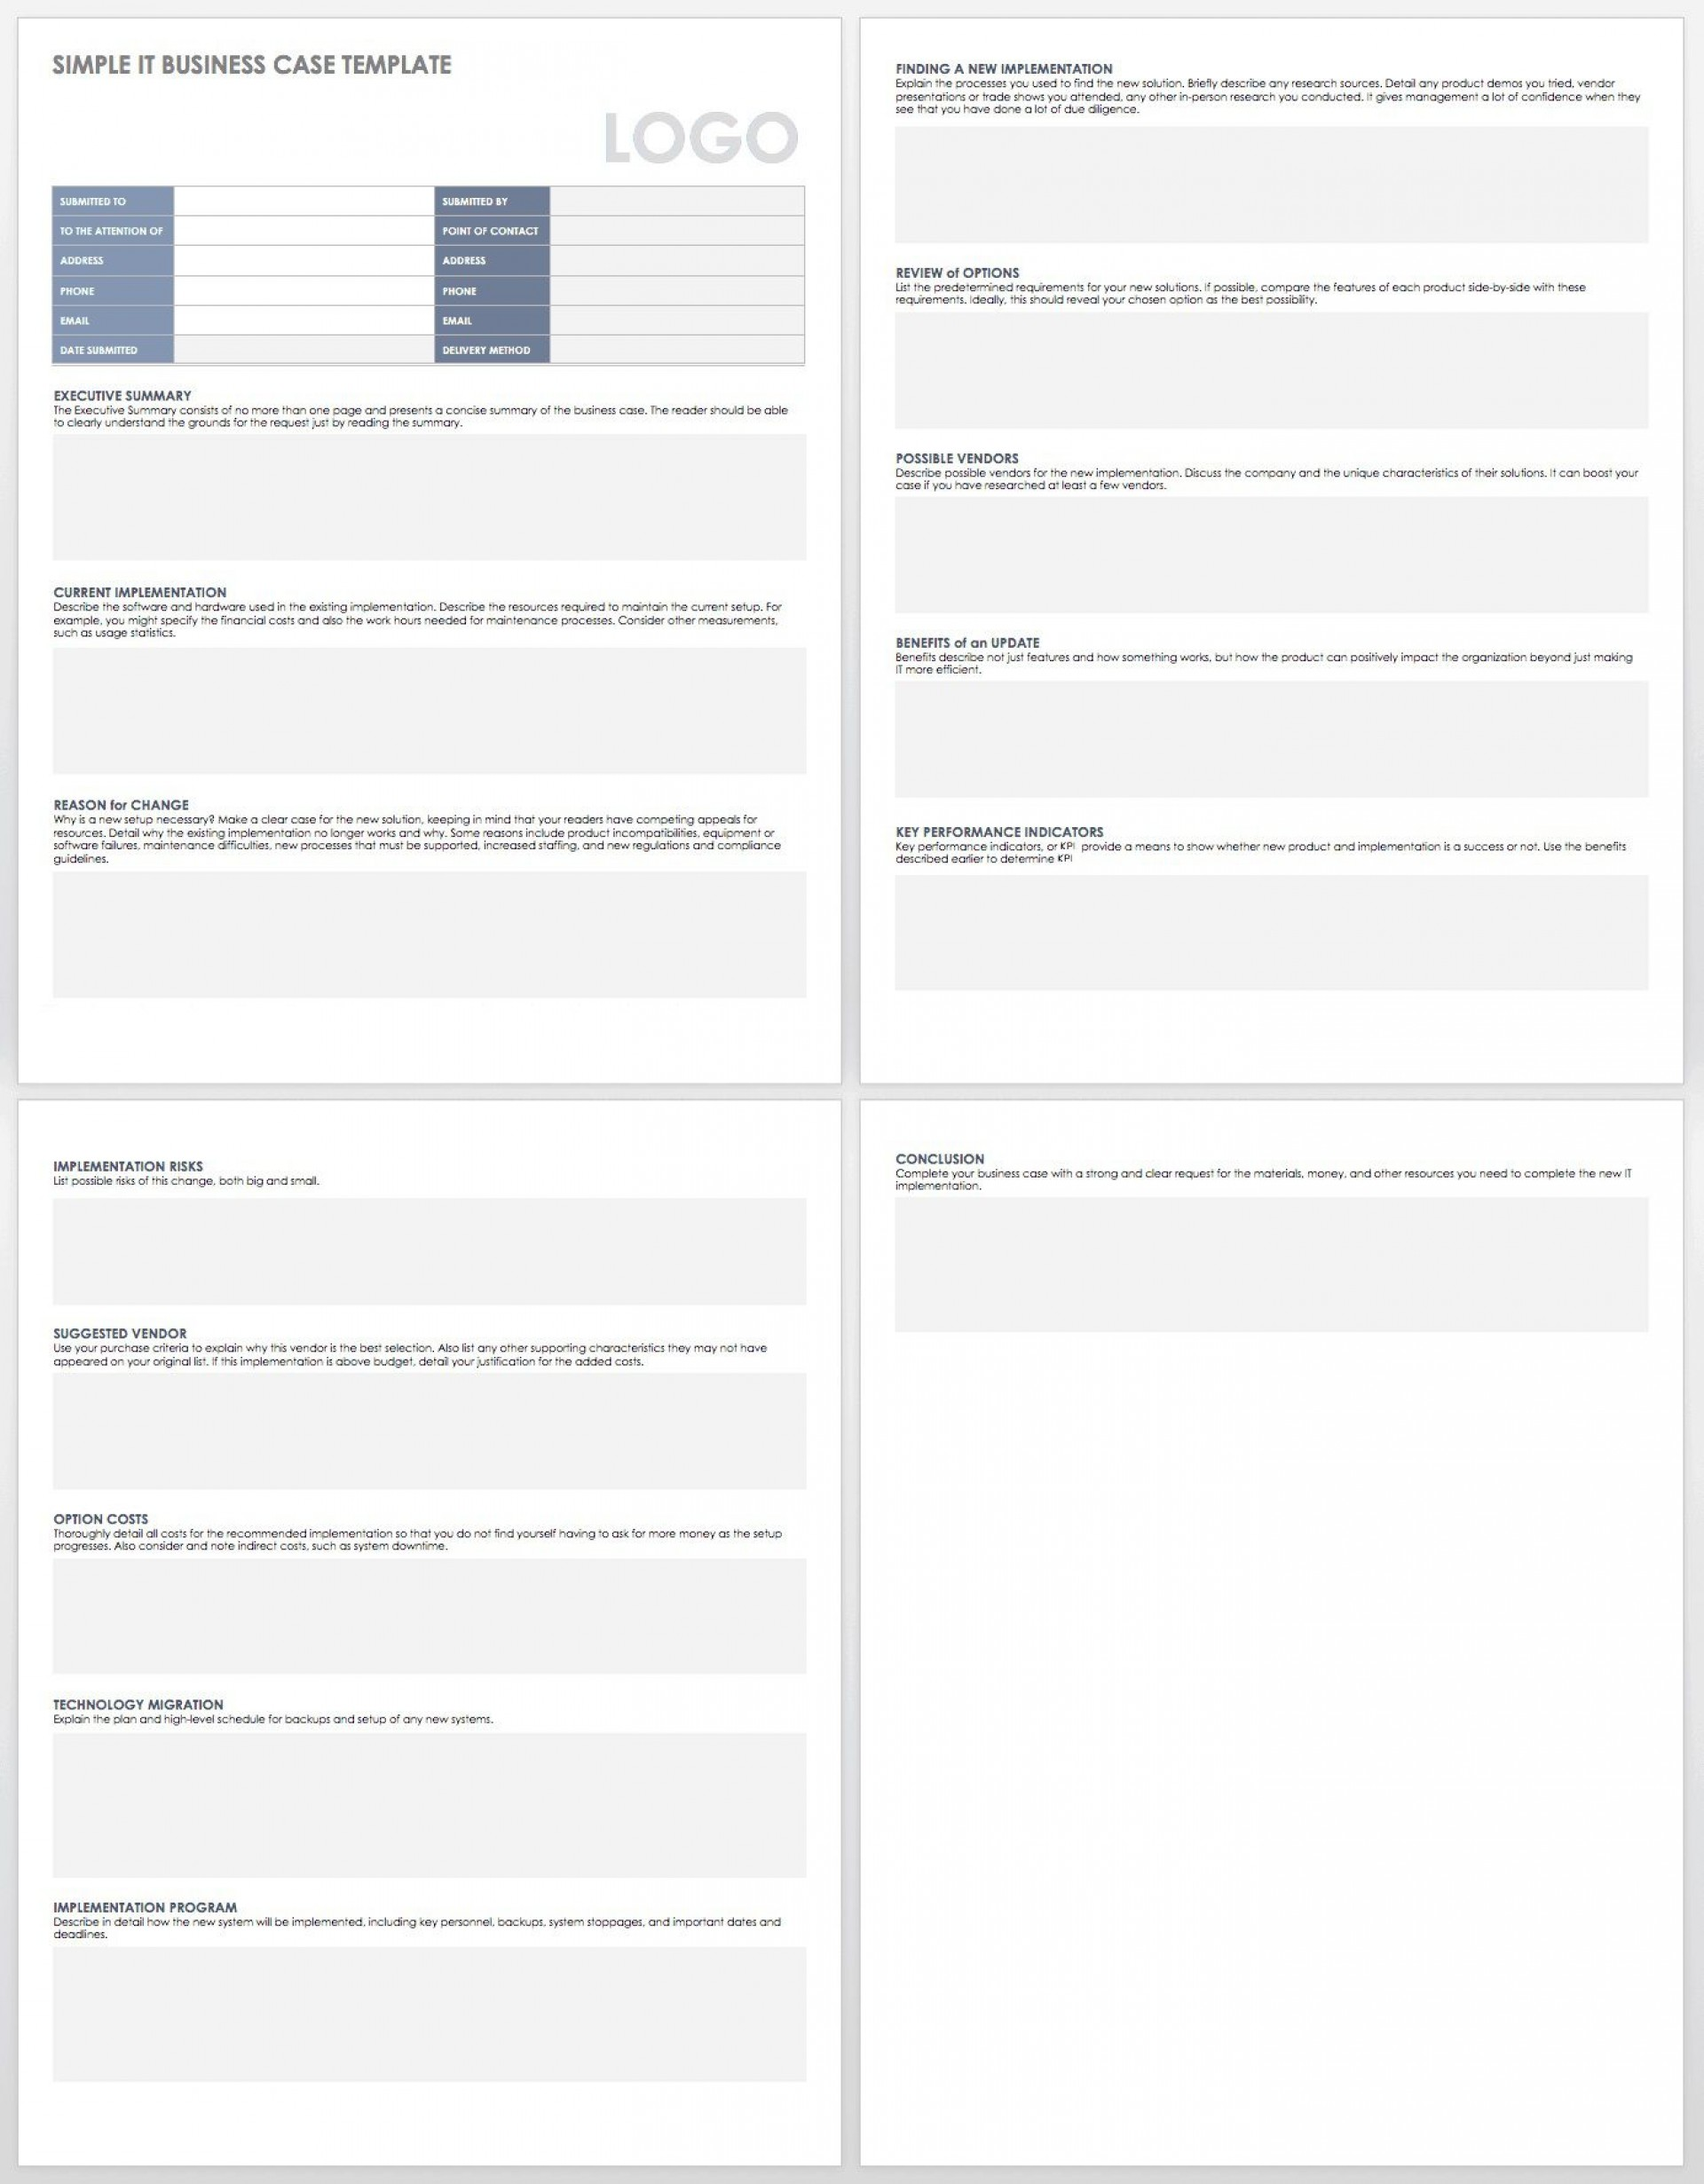 006 Surprising Busines Case Study Template Image  One Page Download Ppt1920